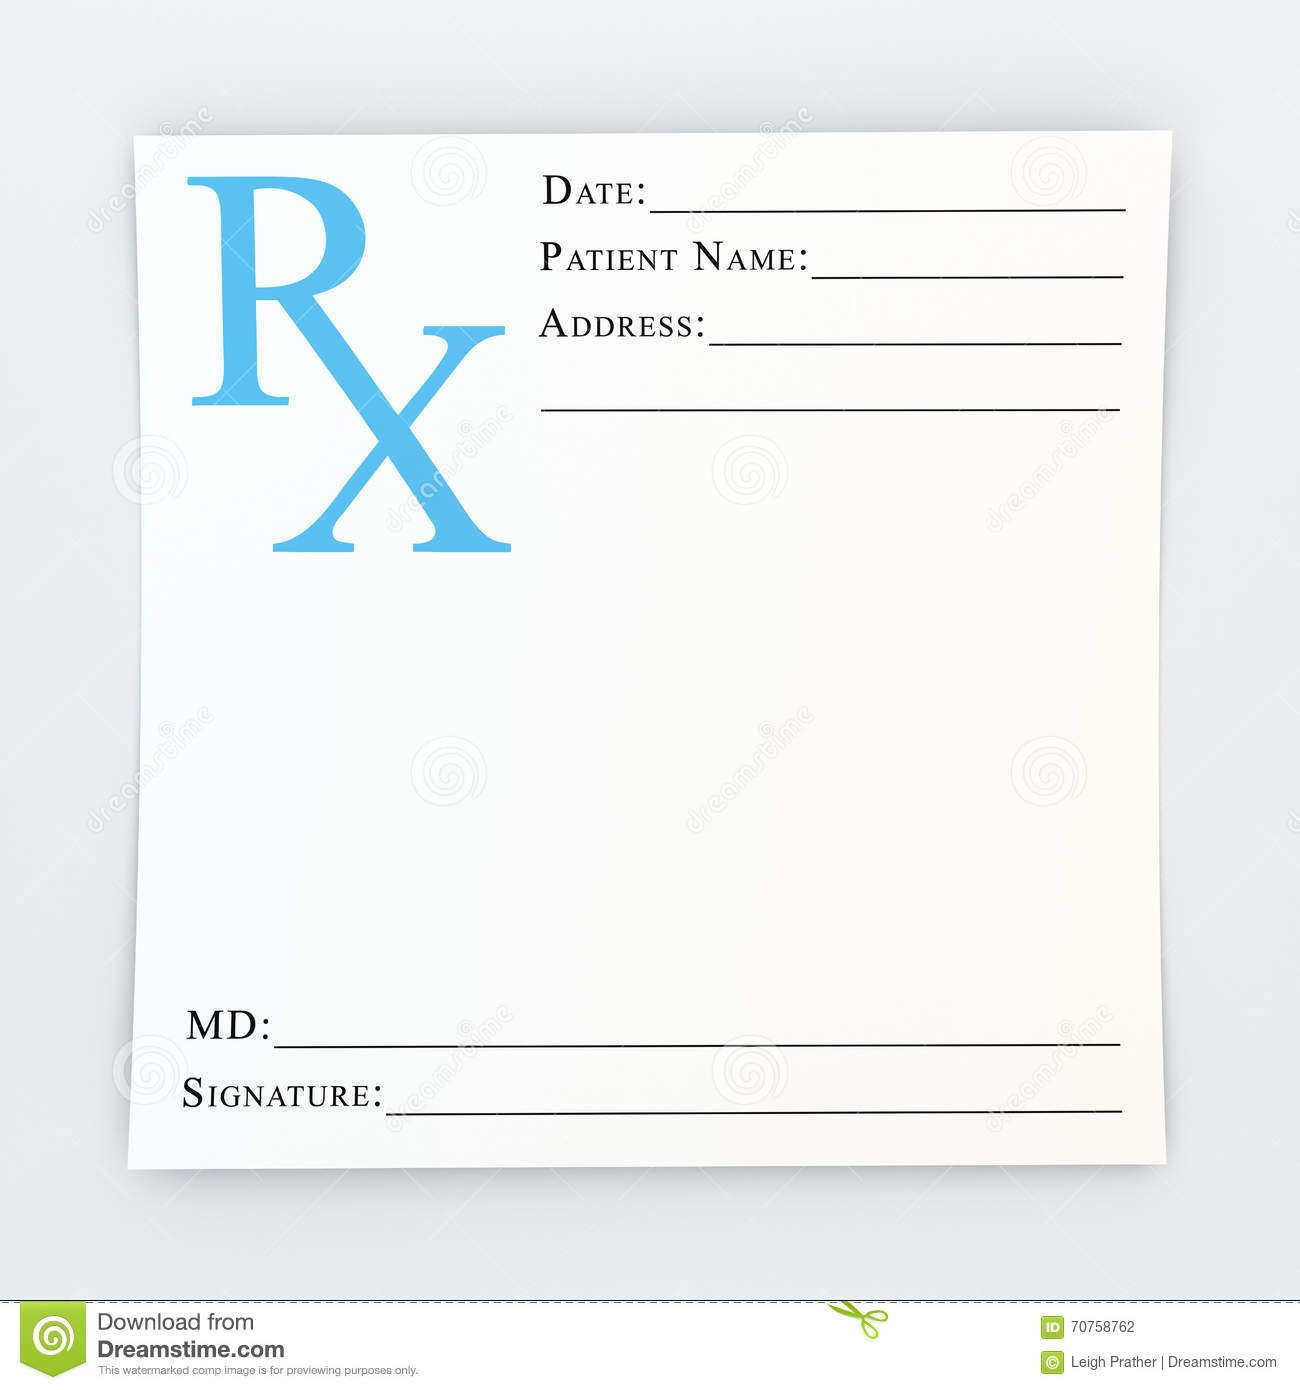 Blank Prescription Pad Free Download - Demir.iso-Consulting.co - Free Printable Prescription Pad